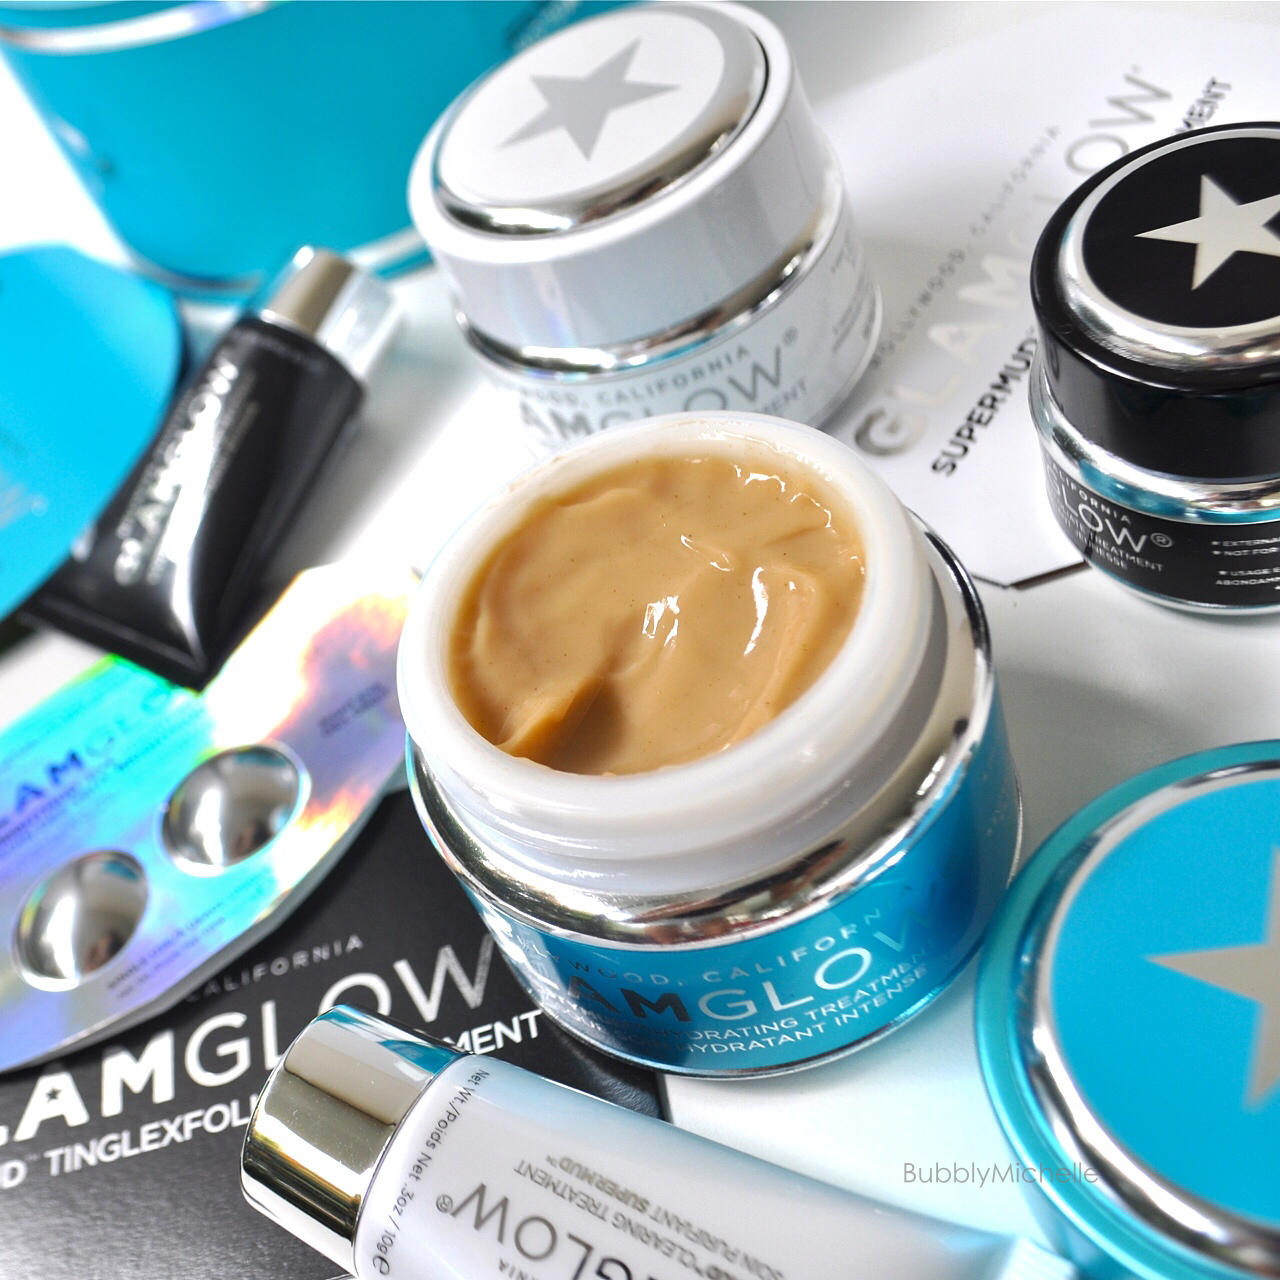 10% Off Glamglow Mask and more @ Nordstrom